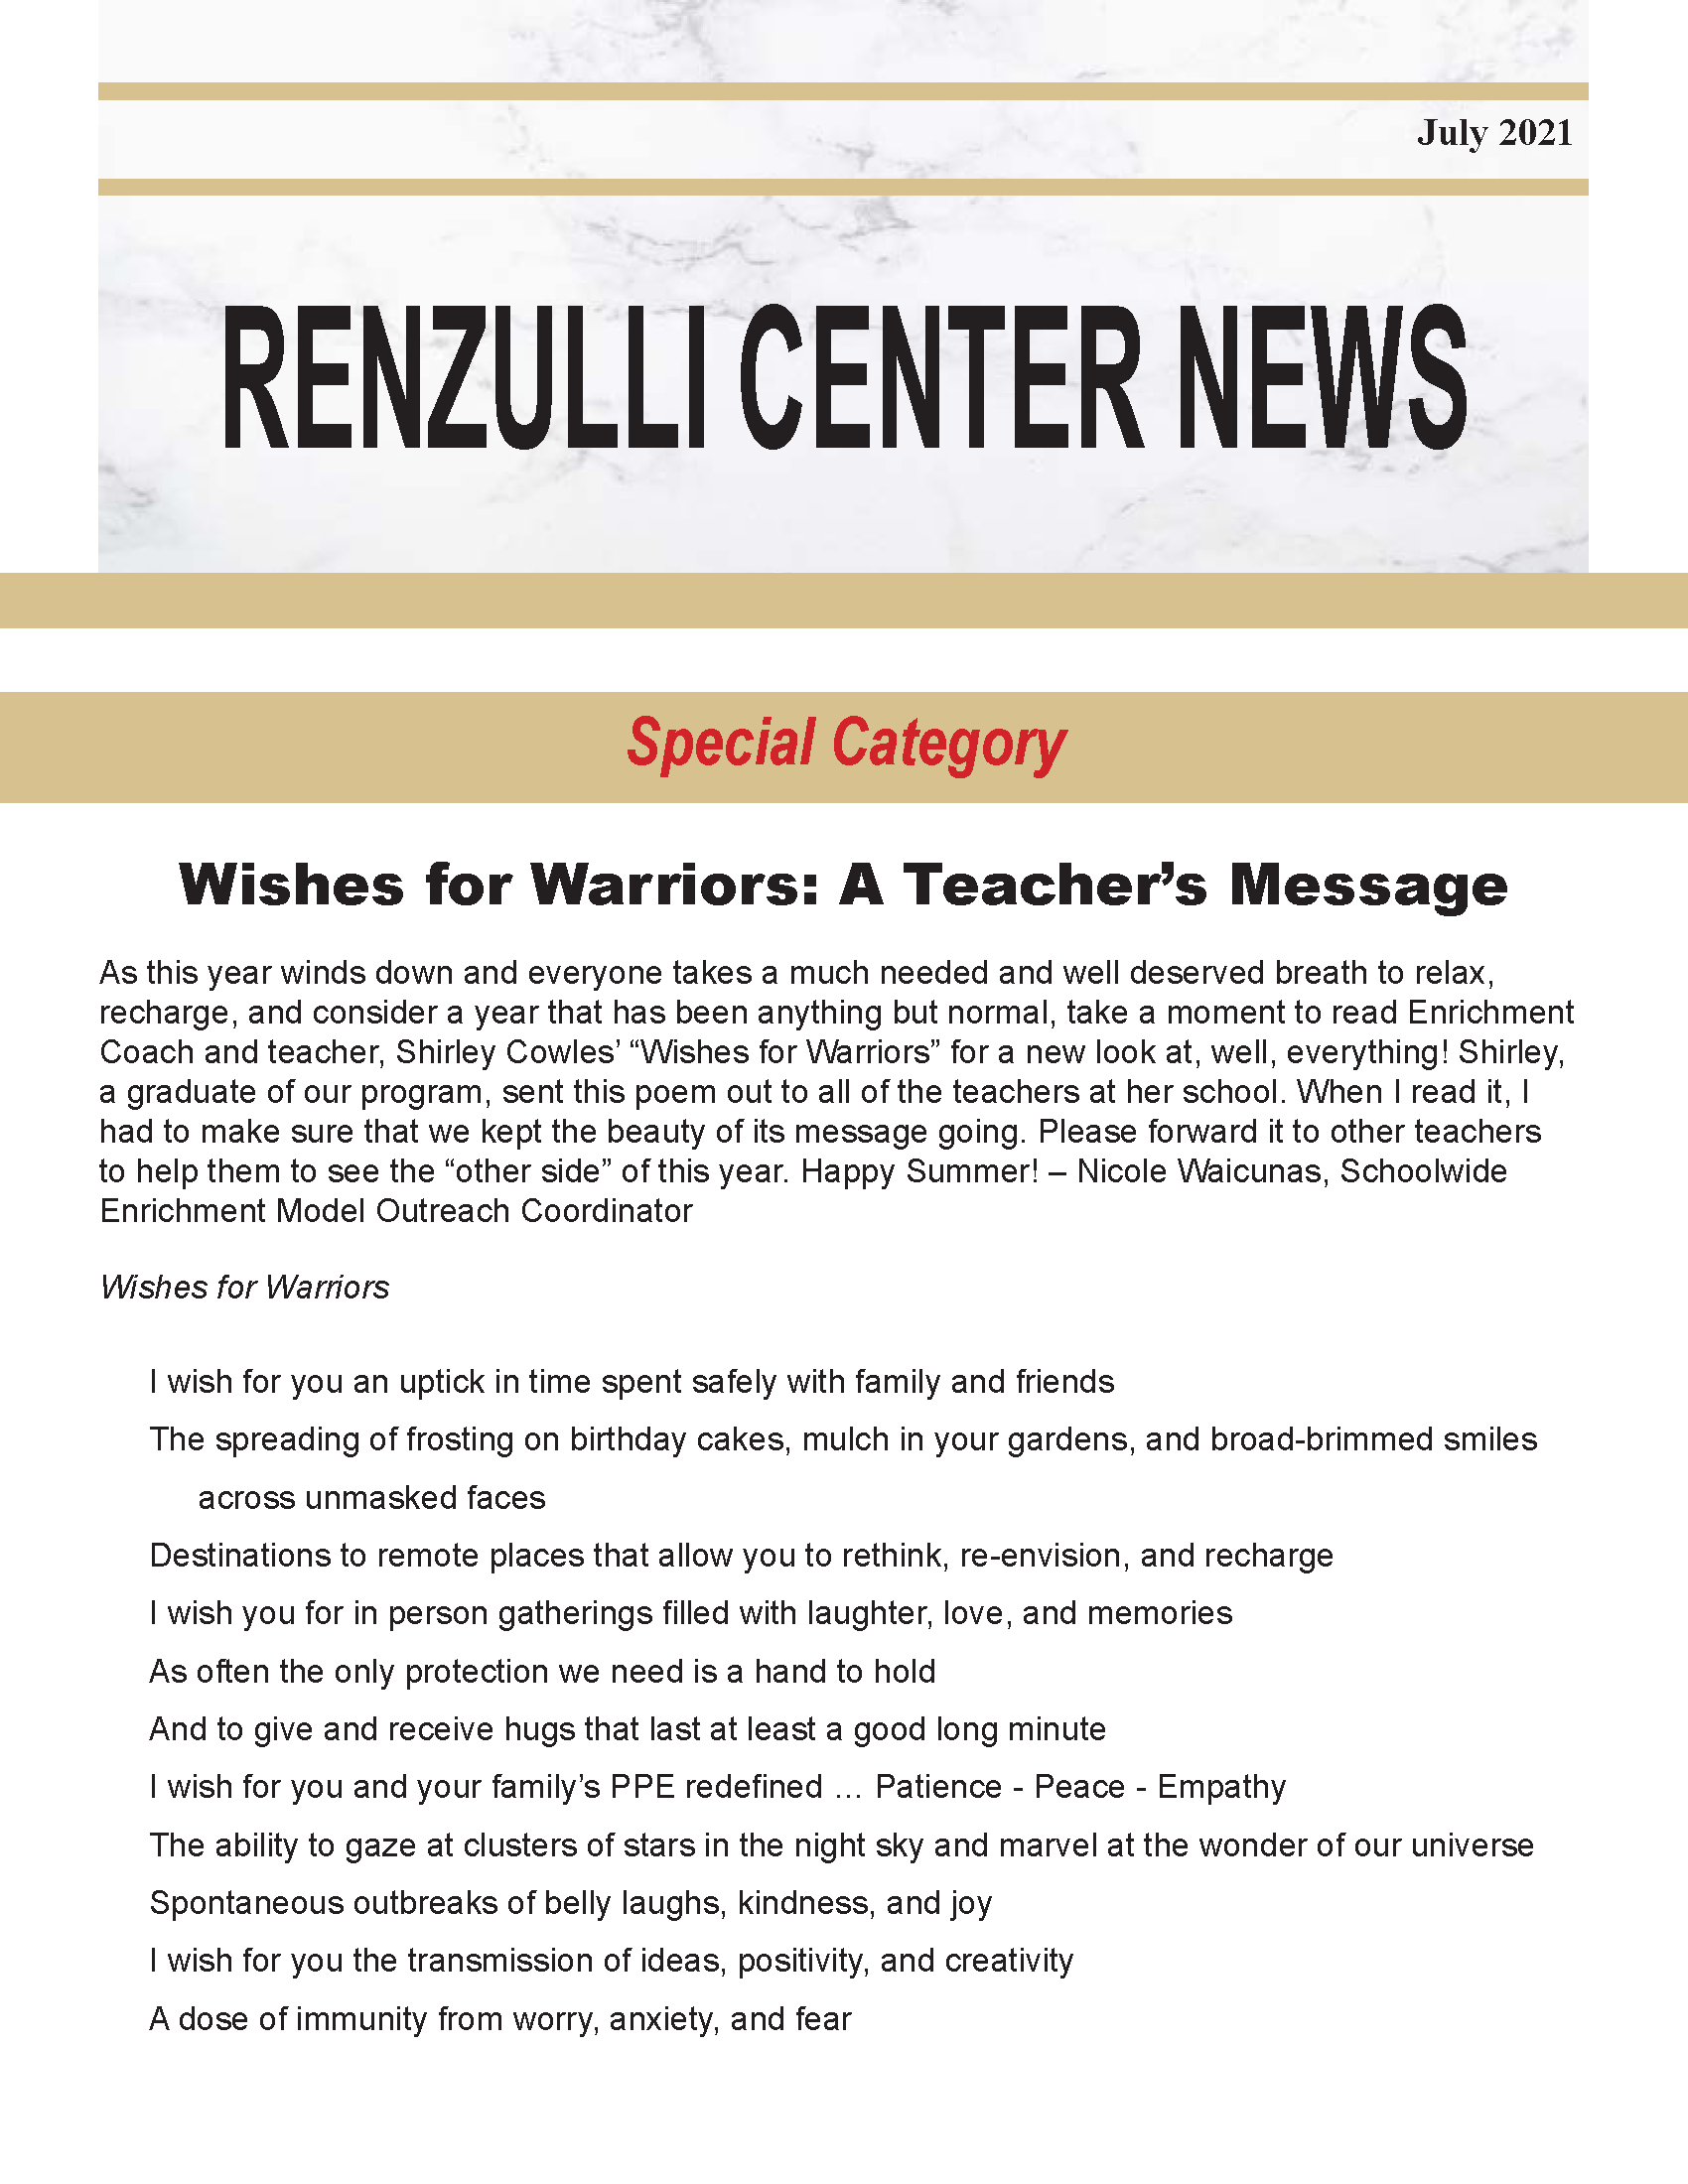 July 2021 Renzulli News Cover Graphic